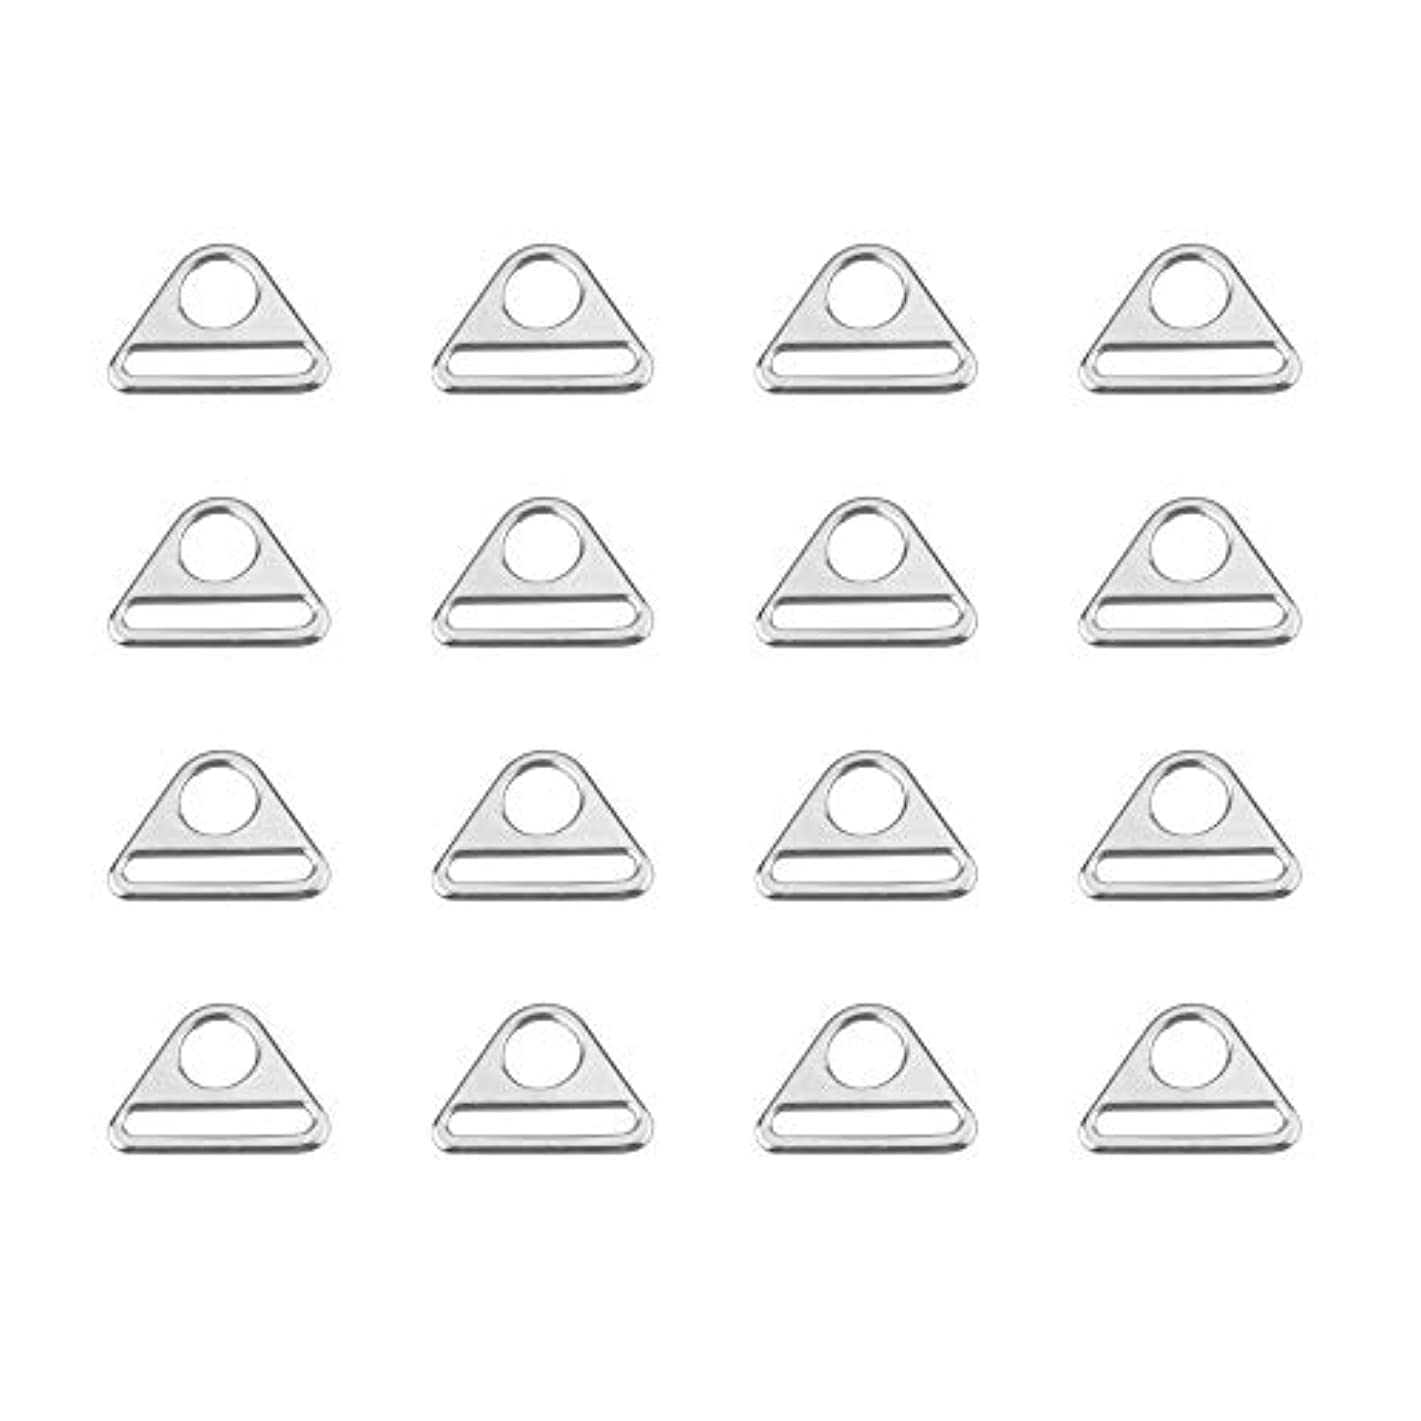 Bluecell 16PCS 1.5inch Triangle Buckle String with bar Swivel Clip D Dee Ring Buckle